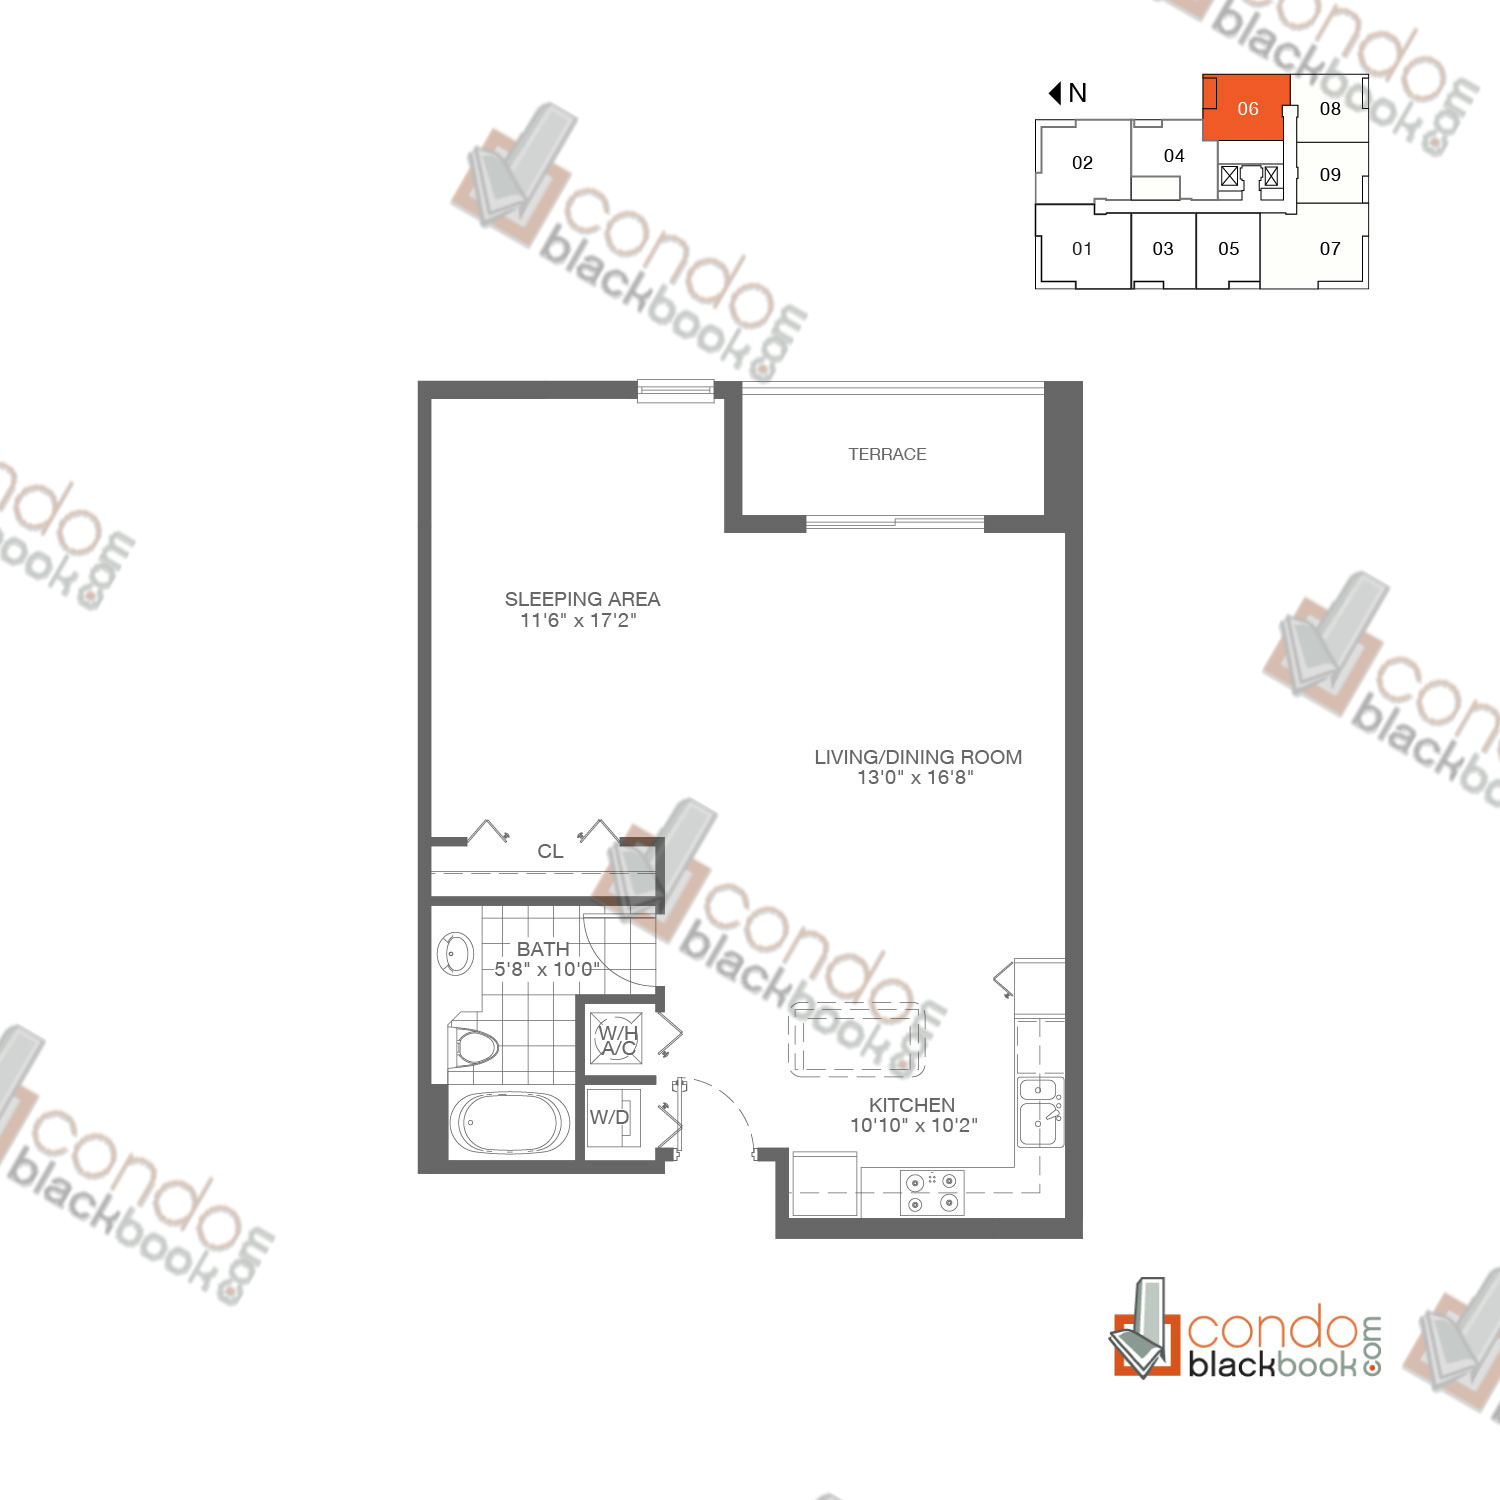 Floor plan for Loft Downtown I Downtown Miami Miami, model A4, line 06,  1/1 bedrooms, 738 sq ft